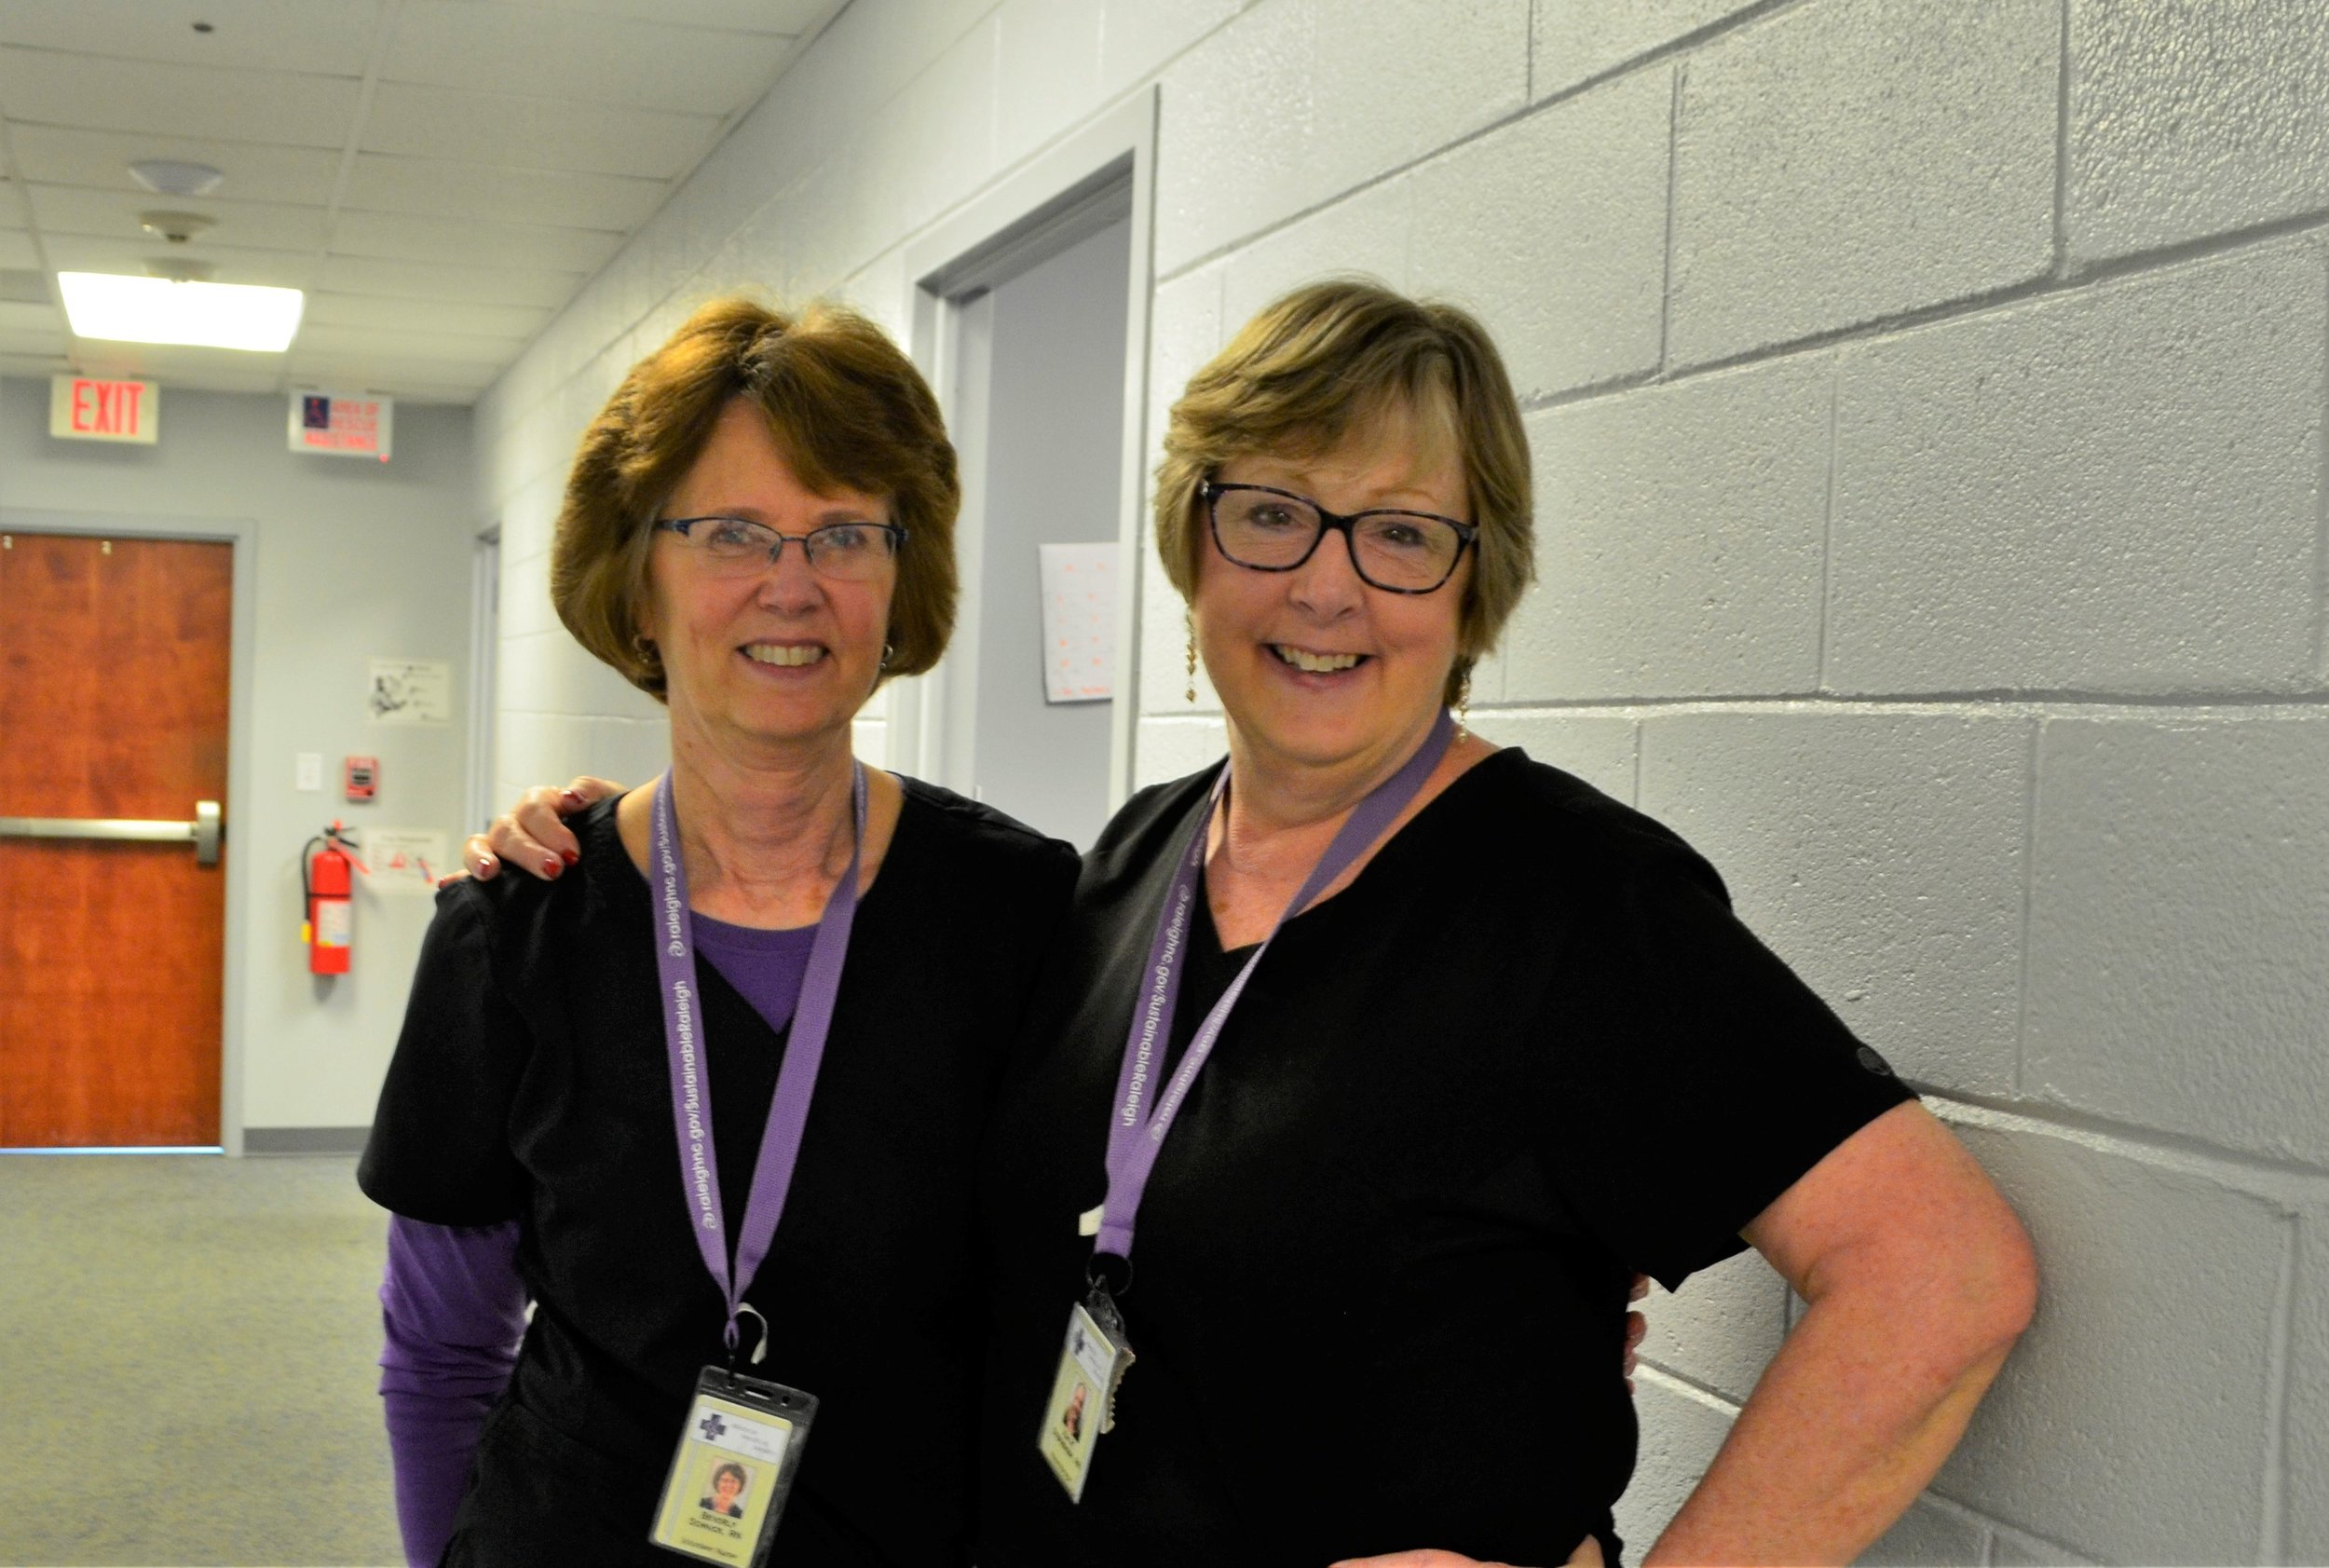 Beverly (L) and Kim Stephenson (R), Director of Nursing